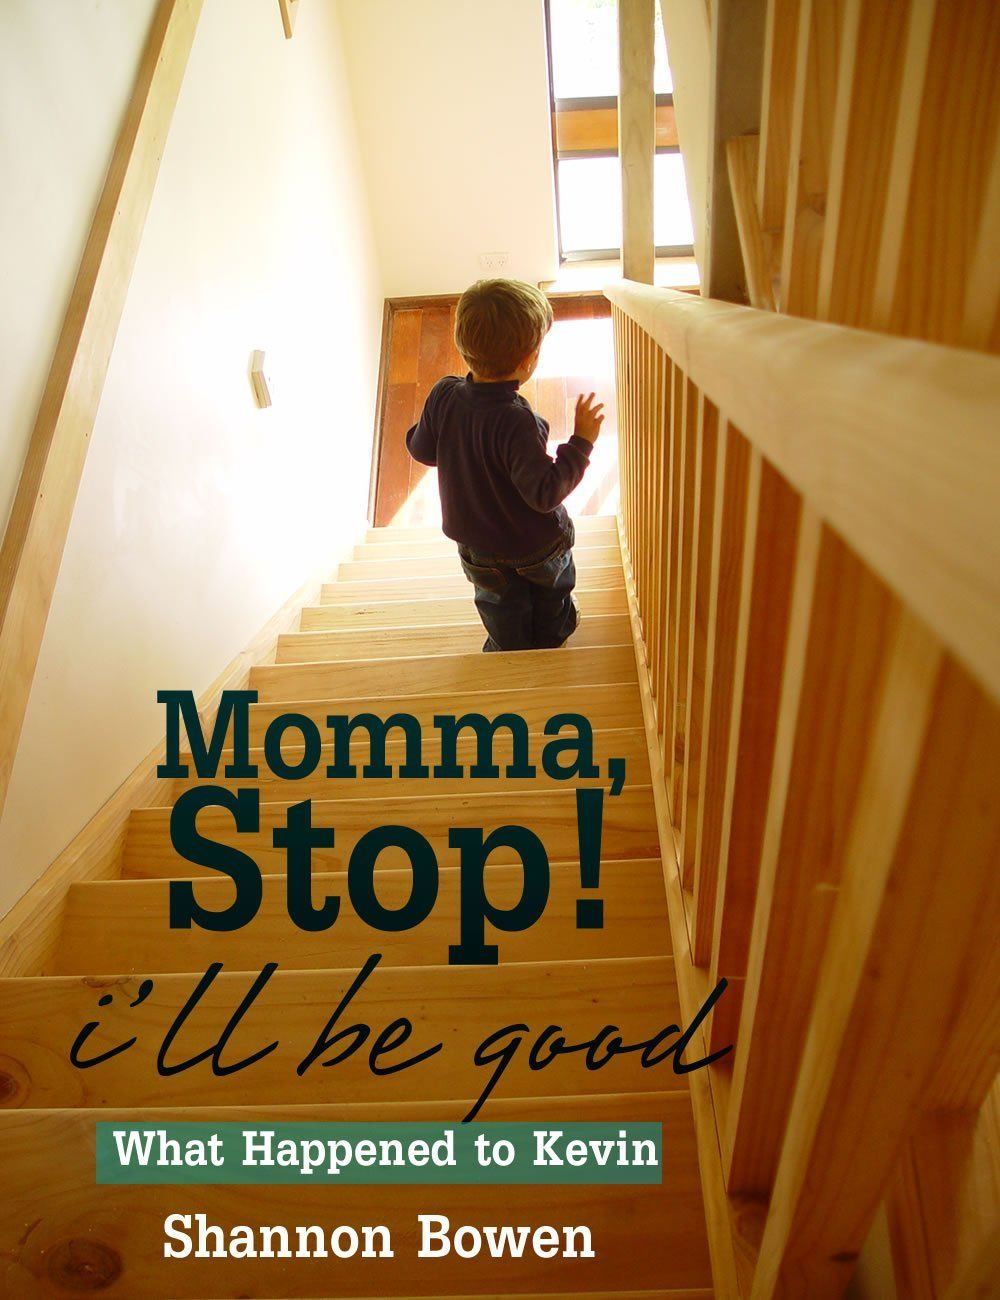 Momma, Stop! I'll Be Good!  by Shannon Bowen ($1.20) http://www.amazon.com/exec/obidos/ASIN/B00D3T1UZY/hpb2-20/ASIN/B00D3T1UZY And I'm so glad someone was looking out for Kevin. - This was a good book, kept me reading to find out what would happen next. - Free or 99 cents but a real waste of time.